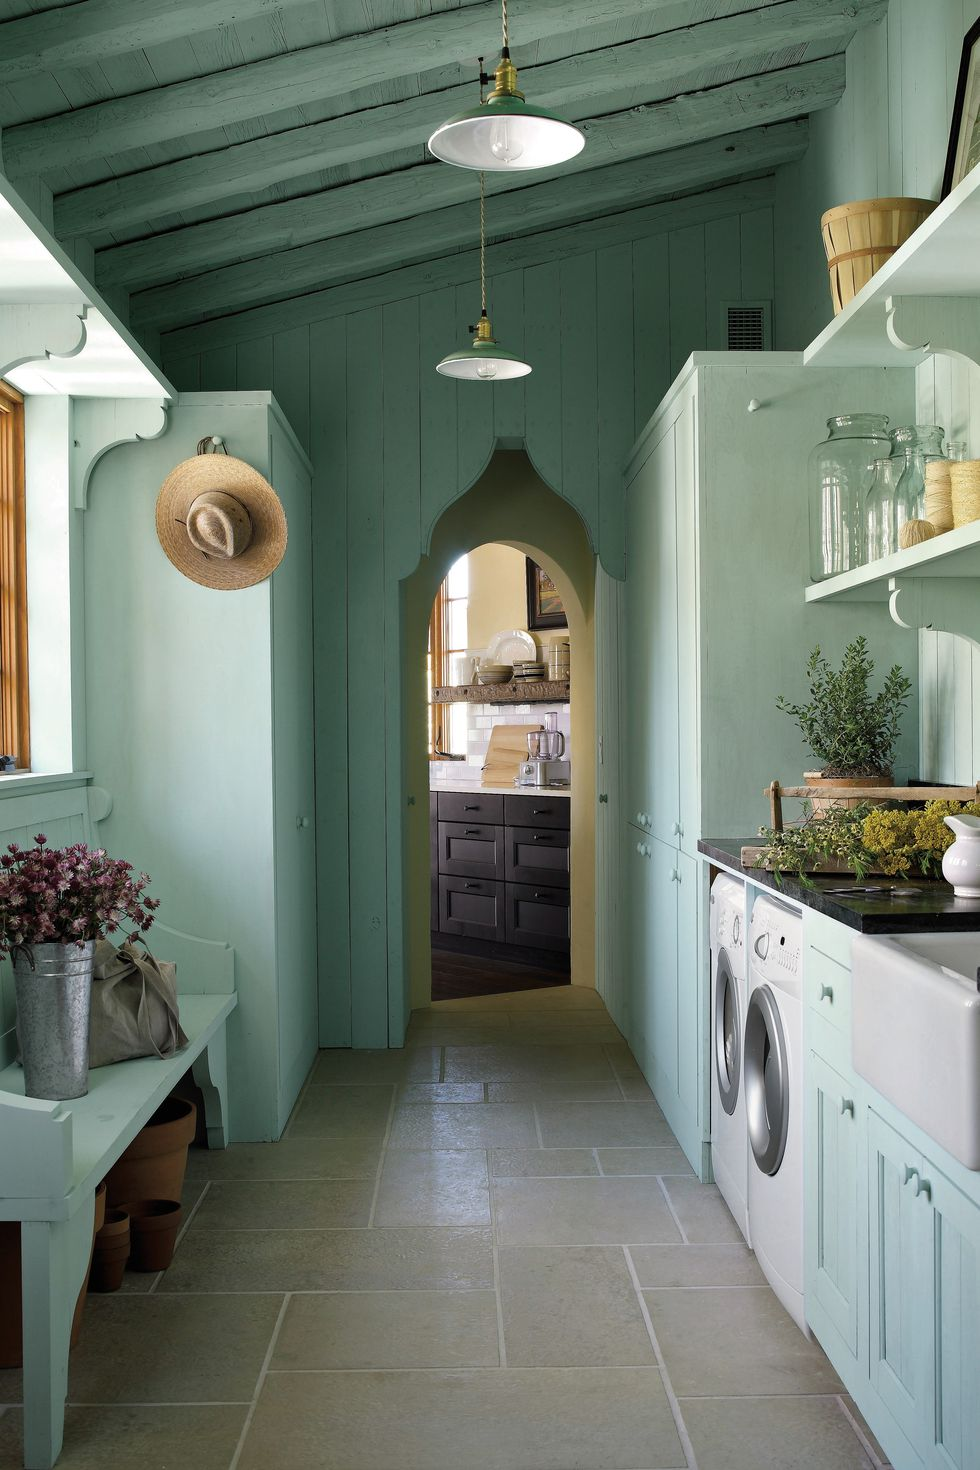 Breathtaking architecture and green color in a laundry room by architect Michael Imber - come enjoy more Dreamy Laundry Room Inspiration to Re-imagine a Timeless Tranquil Design!